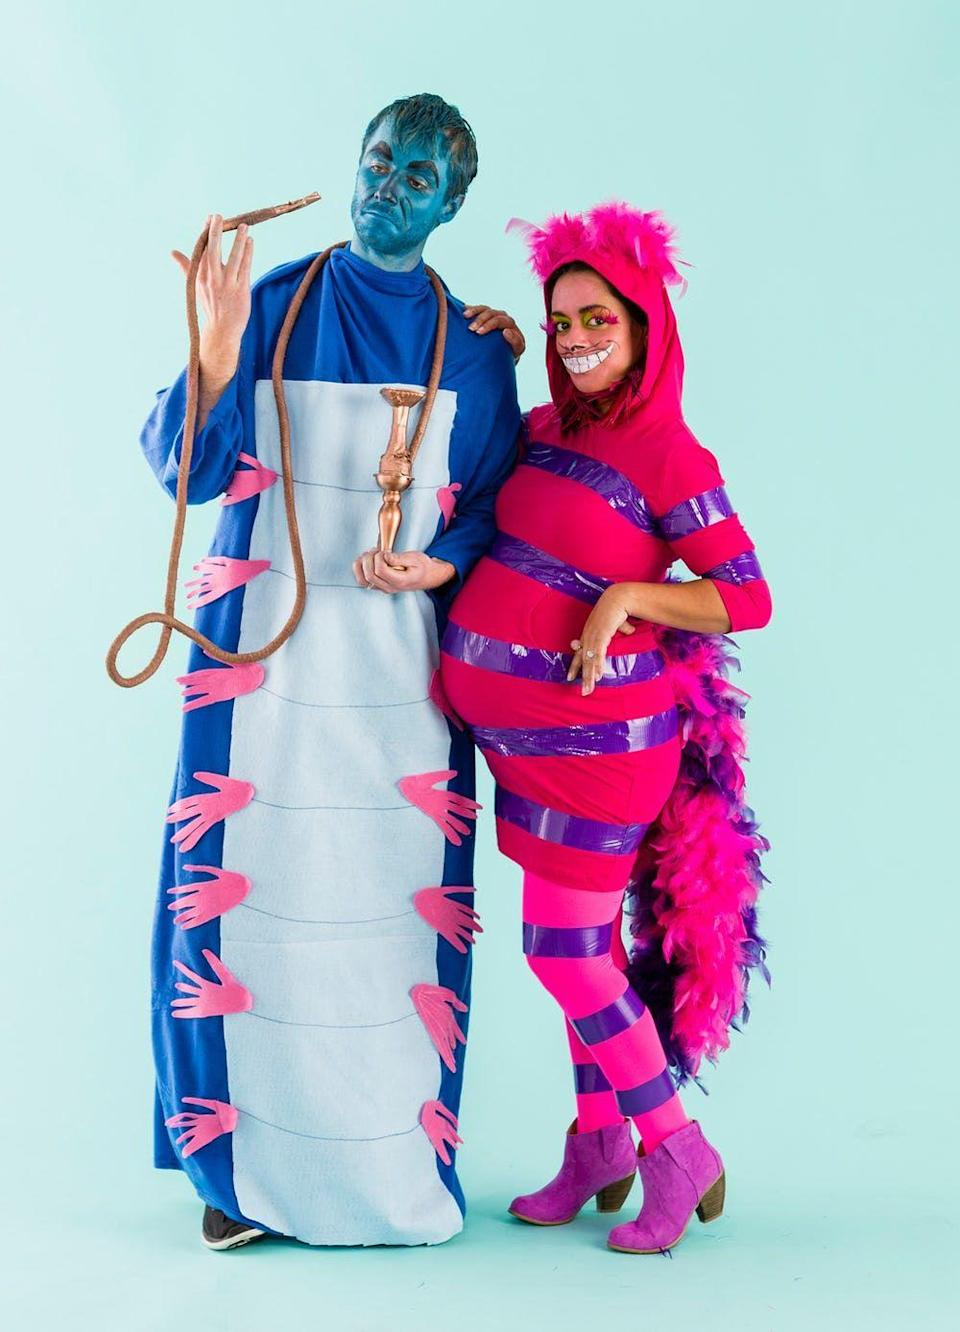 "<p>Looking for a clever way to make use of that old blue Snuggie? This caterpillar costume is for you! Just add a felt strip down the center to define the belly and glue on a bunch of hot pink hand shapes. To make it a <a href=""https://www.countryliving.com/diy-crafts/g32906192/diy-group-halloween-costume-ideas/"" rel=""nofollow noopener"" target=""_blank"" data-ylk=""slk:group Halloween costume"" class=""link rapid-noclick-resp"">group Halloween costume</a>, recruit a friend to dress up as the Cheshire Cat (see <a href=""https://www.countryliving.com/diy-crafts/g21527022/cat-makeup-ideas/"" rel=""nofollow noopener"" target=""_blank"" data-ylk=""slk:Halloween cat makeup ideas"" class=""link rapid-noclick-resp"">Halloween cat makeup ideas</a>). Just dress in head-to-toe pink and add stripes with purple duct tape. A feather boa tail finishes the look. </p><p><strong>Get the tutorial at <a href=""https://www.brit.co/youll-go-mad-for-this-alice-in-wonderland-halloween-costume/"" rel=""nofollow noopener"" target=""_blank"" data-ylk=""slk:Brit + Co"" class=""link rapid-noclick-resp"">Brit + Co</a>. </strong></p><p><a class=""link rapid-noclick-resp"" href=""https://www.amazon.com/Z-Blanket-Purple-Premium-Wearable/dp/B01KBNDBZG/?tag=syn-yahoo-20&ascsubtag=%5Bartid%7C10050.g.29343502%5Bsrc%7Cyahoo-us"" rel=""nofollow noopener"" target=""_blank"" data-ylk=""slk:SHOP BLUE SNUGGIES"">SHOP BLUE SNUGGIES</a></p>"